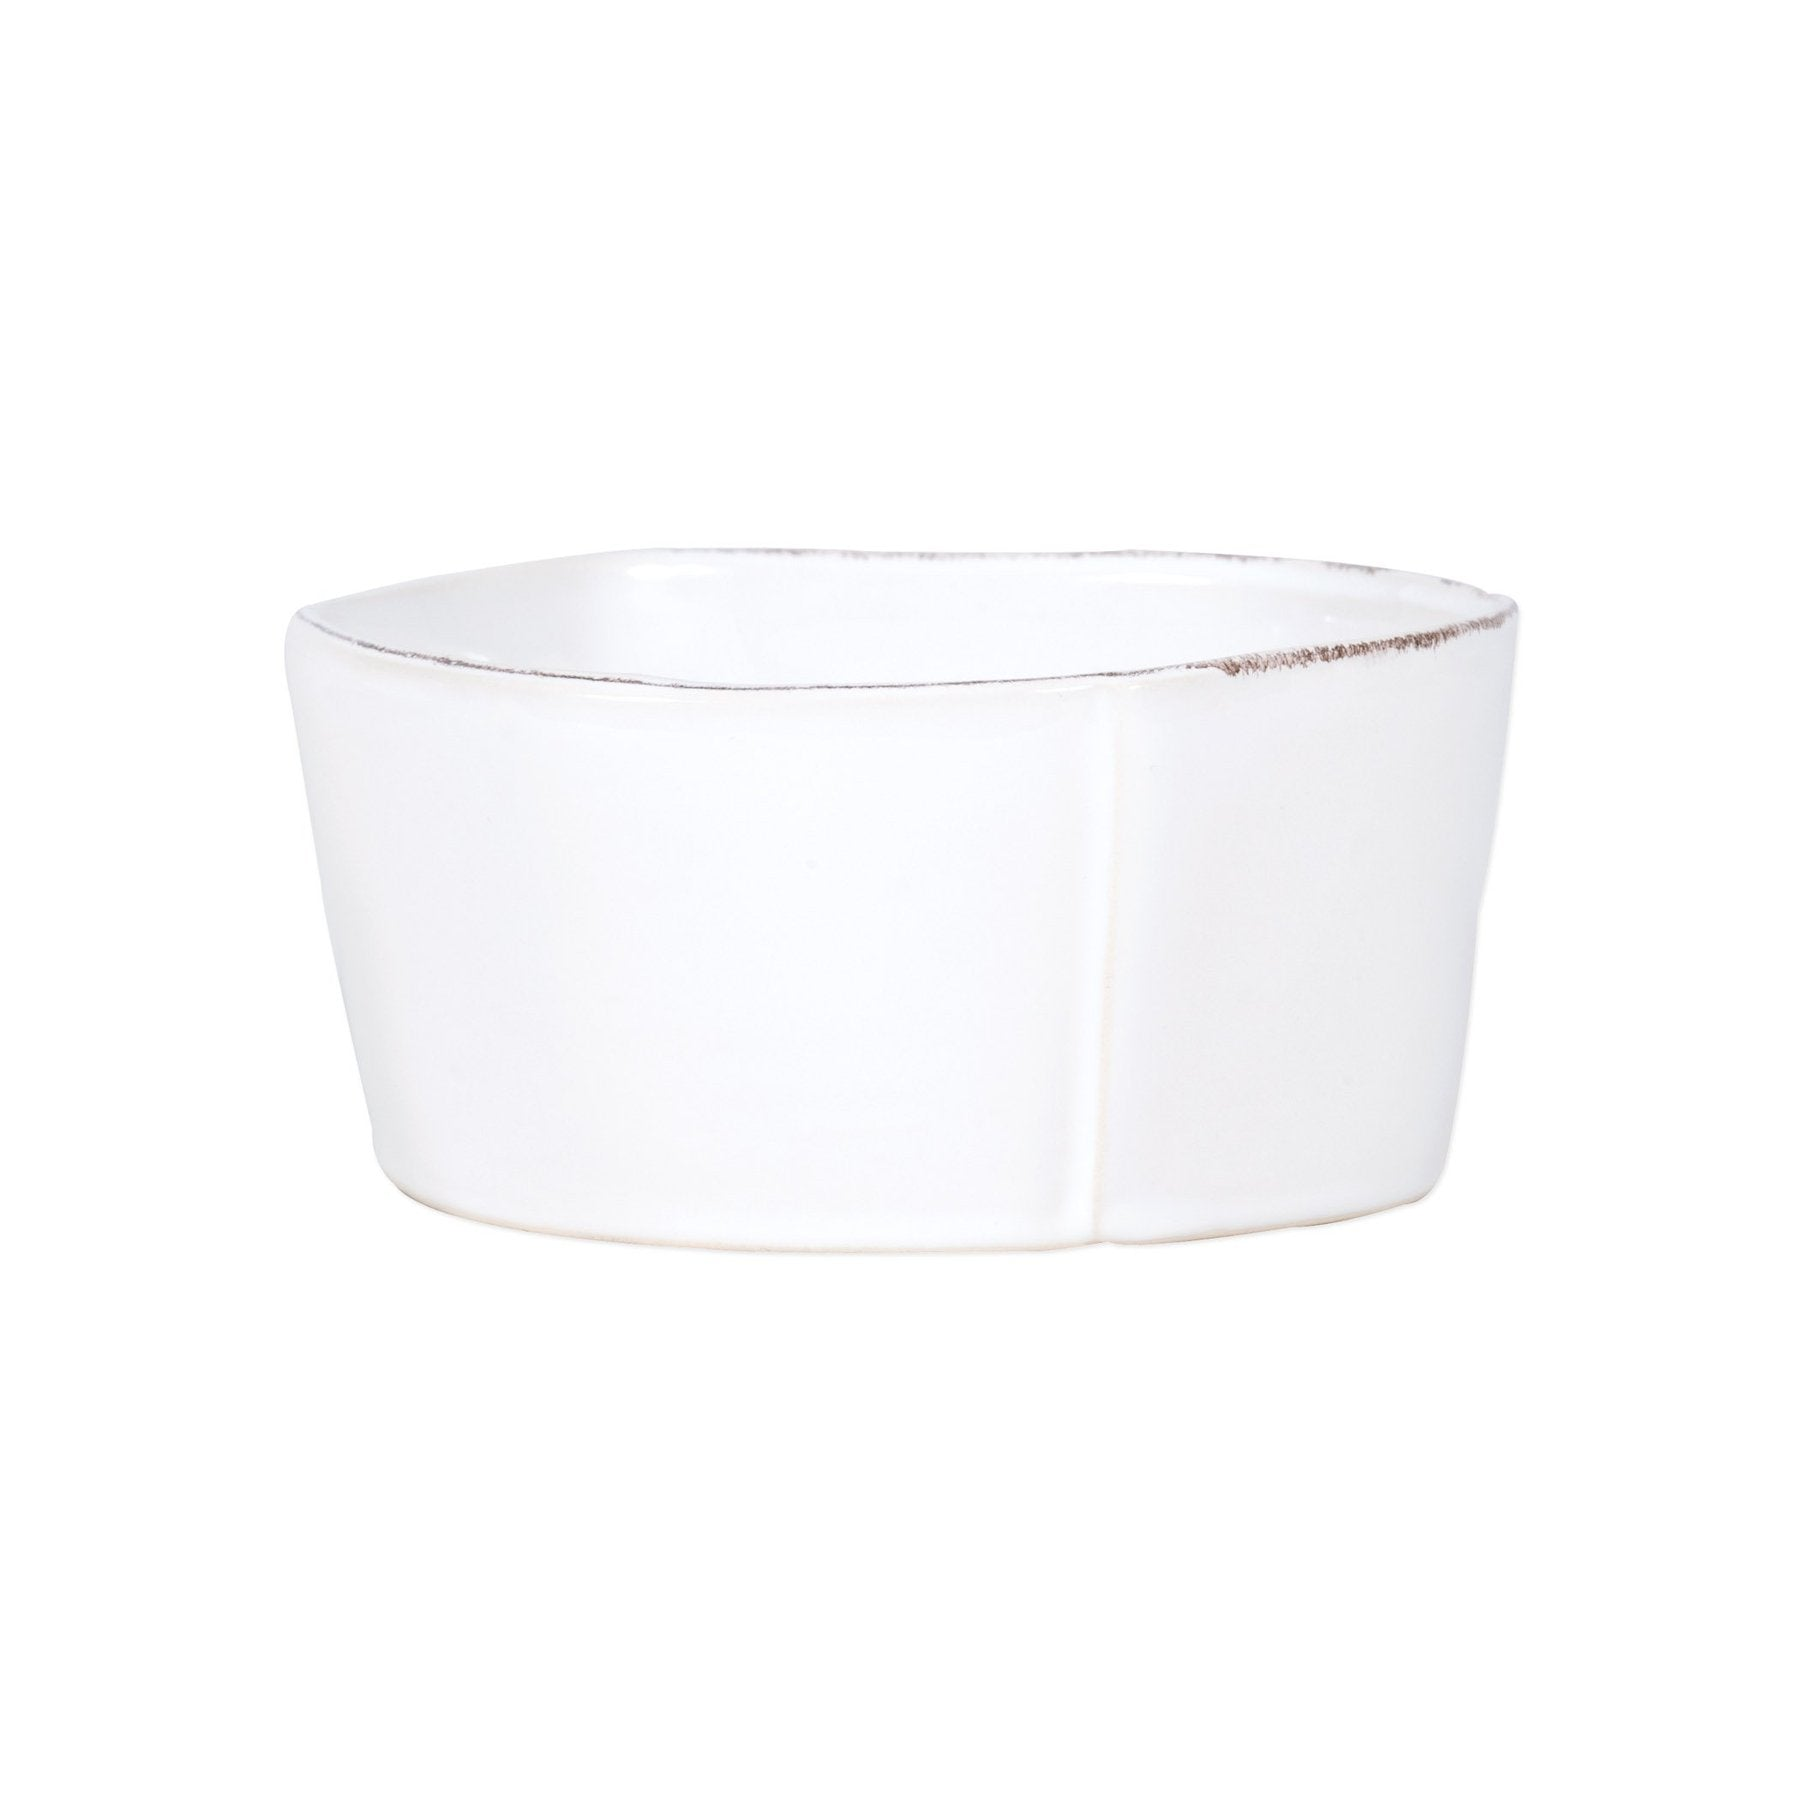 Vietri - Lastra Medium Serving Bowl - White